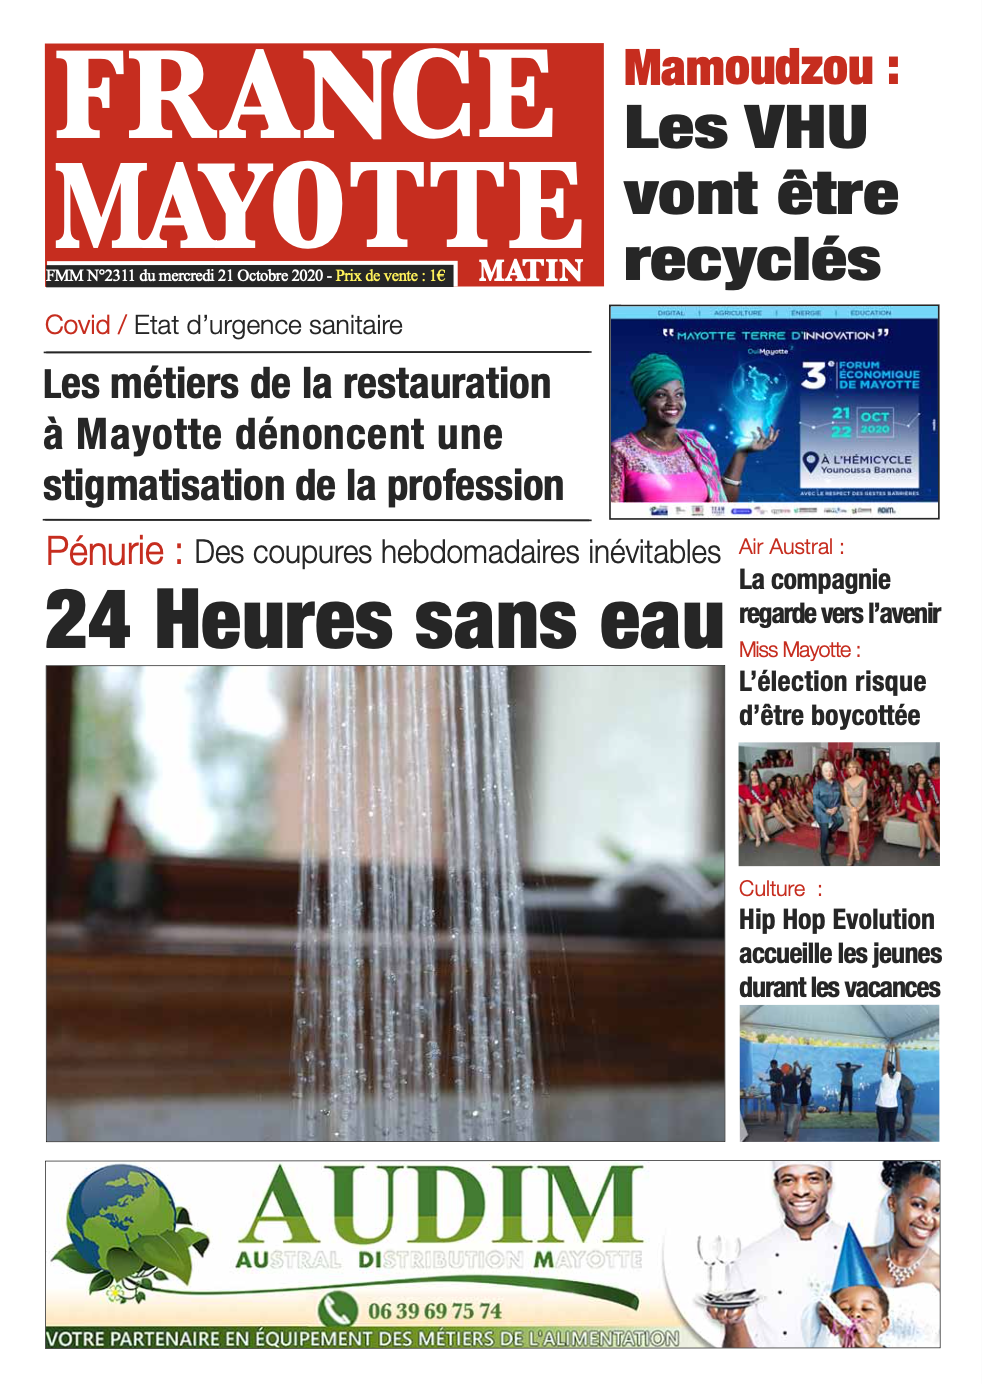 France Mayotte Mercredi 21 octobre 2020